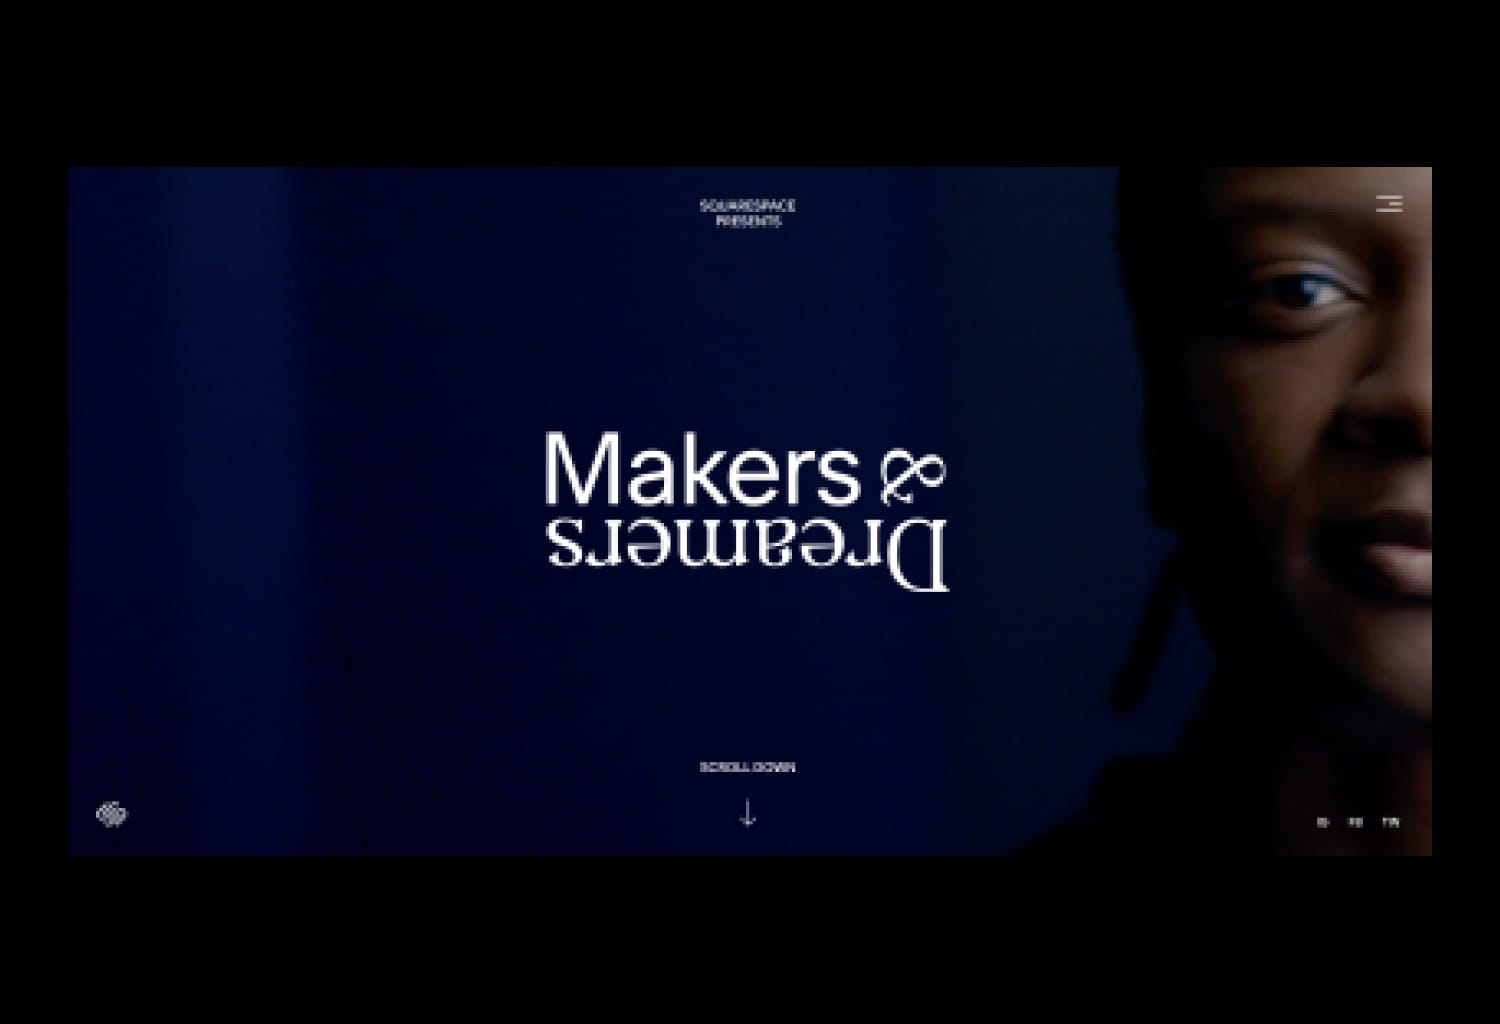 Makers & Dreamers